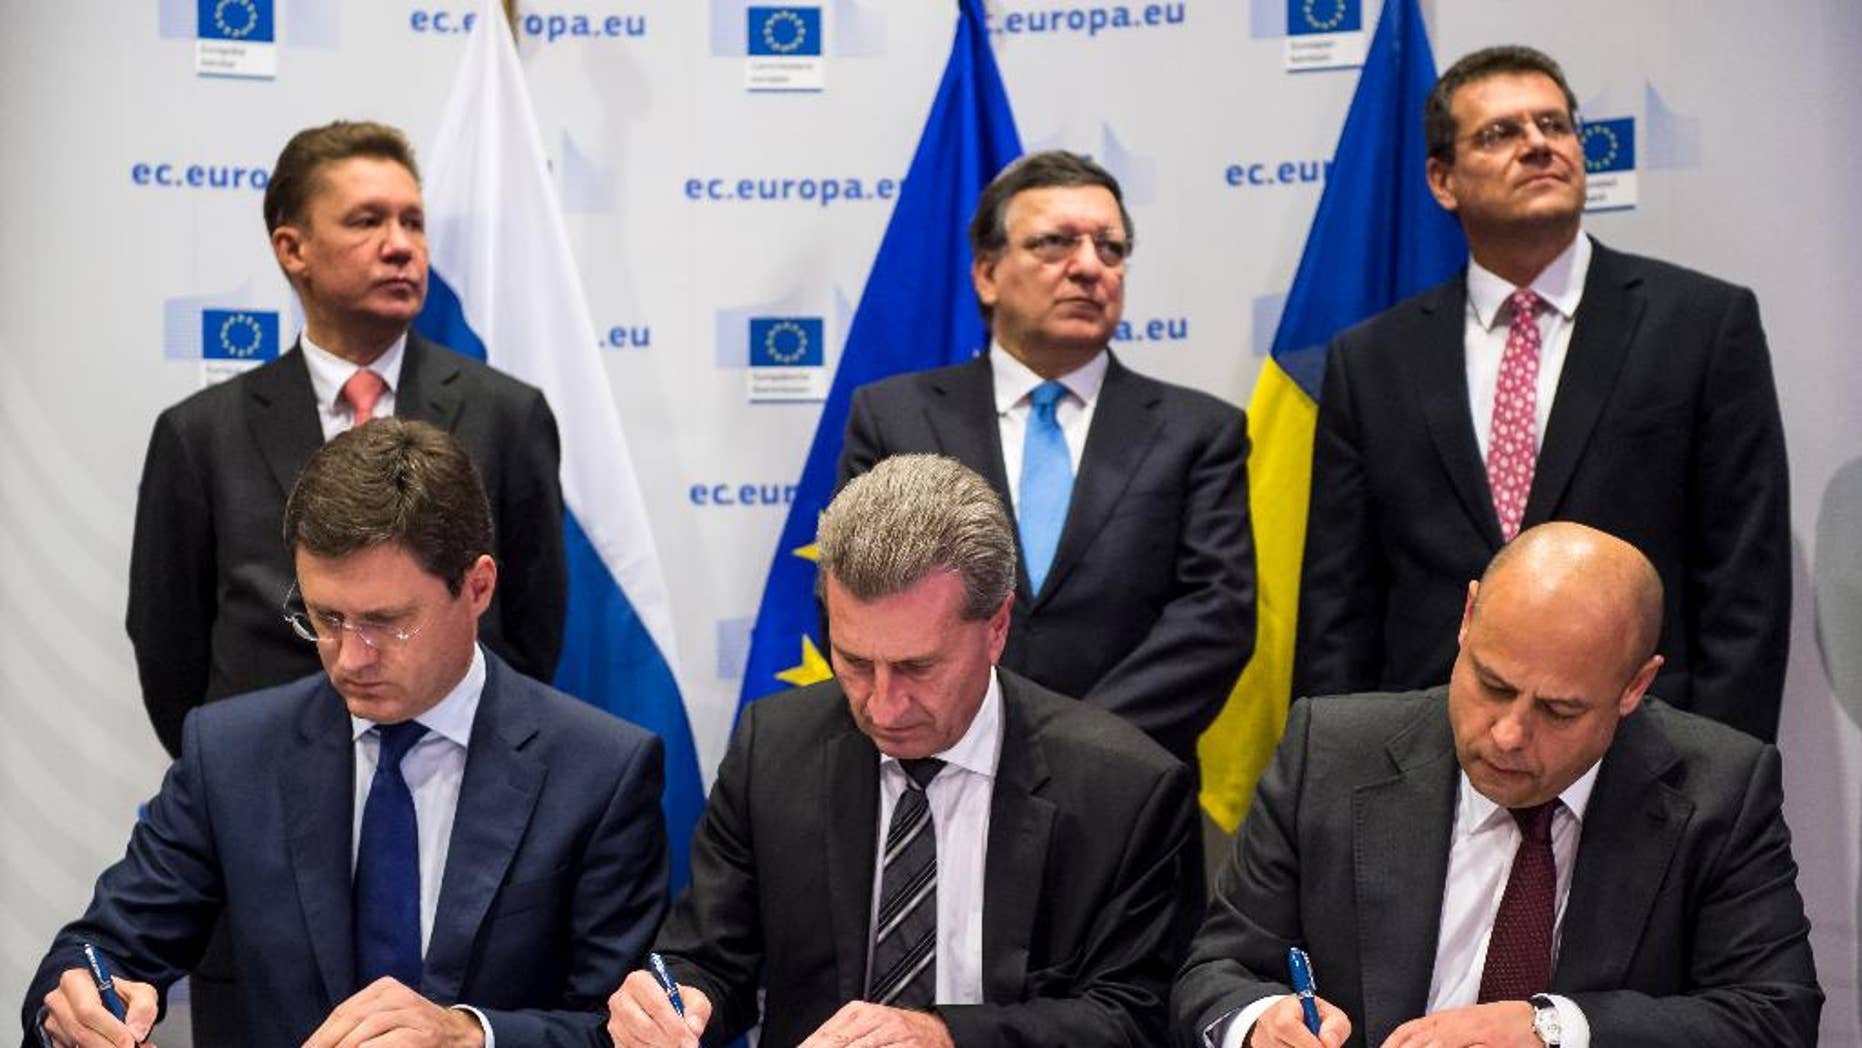 EU Commissioner for Energy Guenther Oettinger, center, Russian Energy Minister Alexander Novak , left, and Ukrainian Energy Minister Yuriy Prodan sign an agreement that guarantees Russian gas will continue to flow to Ukraine and, by extension, parts of the EU this winter as EU Commission President Jose Manuel Barroso, center back, Gazprom CEO Alexey Miller, left back and EU Commissioner for Inter-Institutional Relations and Administration Maros Sefcovic look on, at the European Commission headquarters in Brussels, Thursday, Oct. 30, 2014. (AP Photo/Geert Vanden Wijngaert)